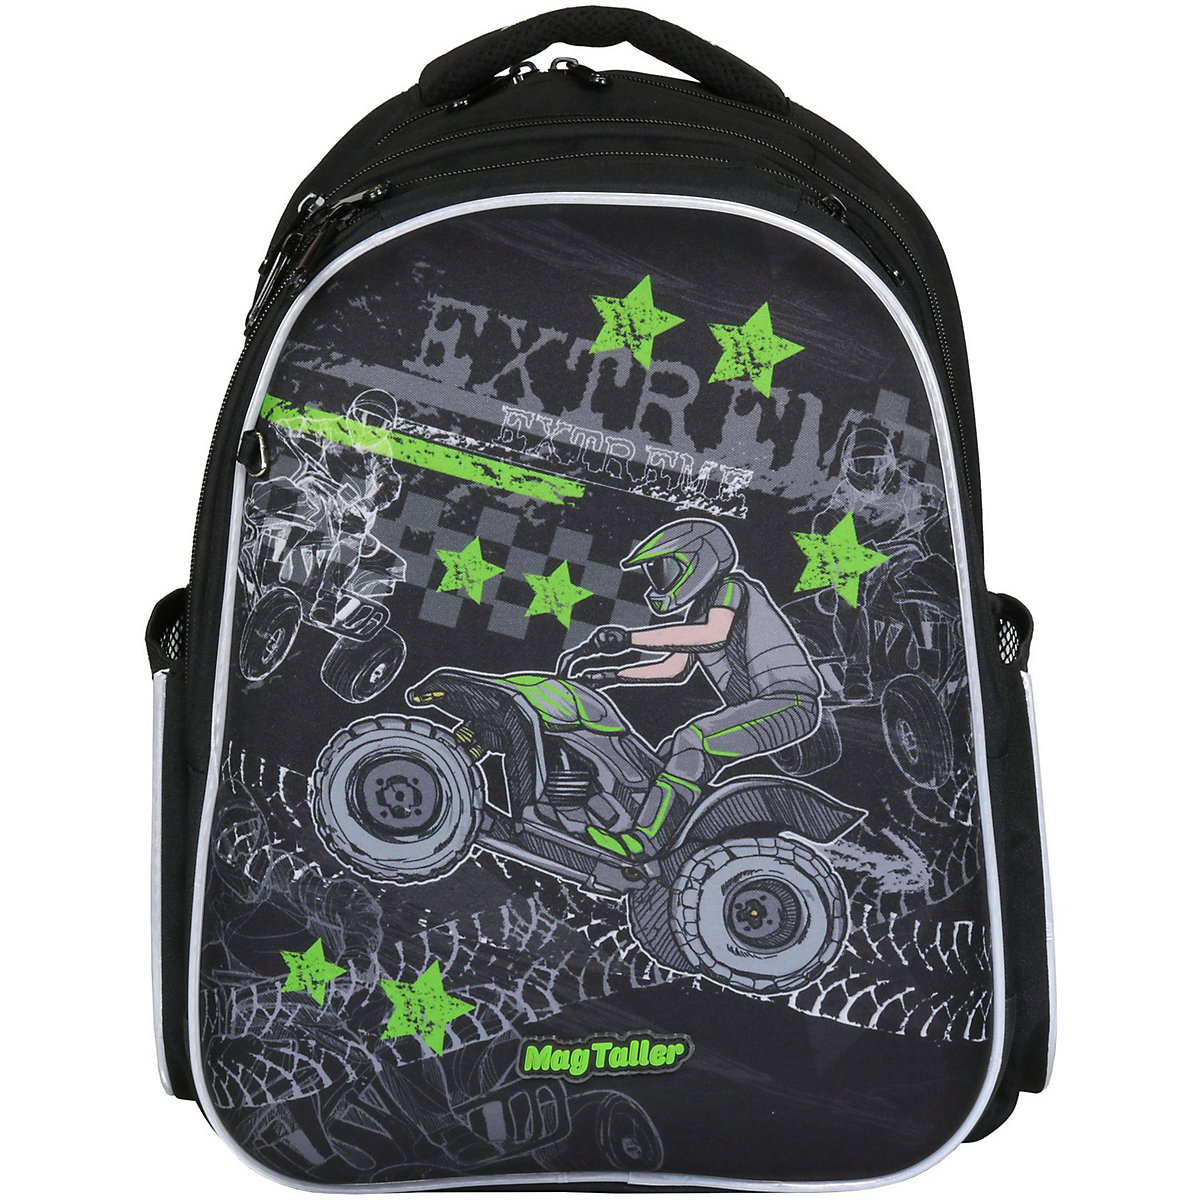 School Bags MAGTALLER 11154948 schoolbag backpack knapsacks orthopedic bag for boy and girl animals flower sprints school bags magtaller 11154976 schoolbag backpack knapsacks orthopedic bag for boy and girl animals flower sprints